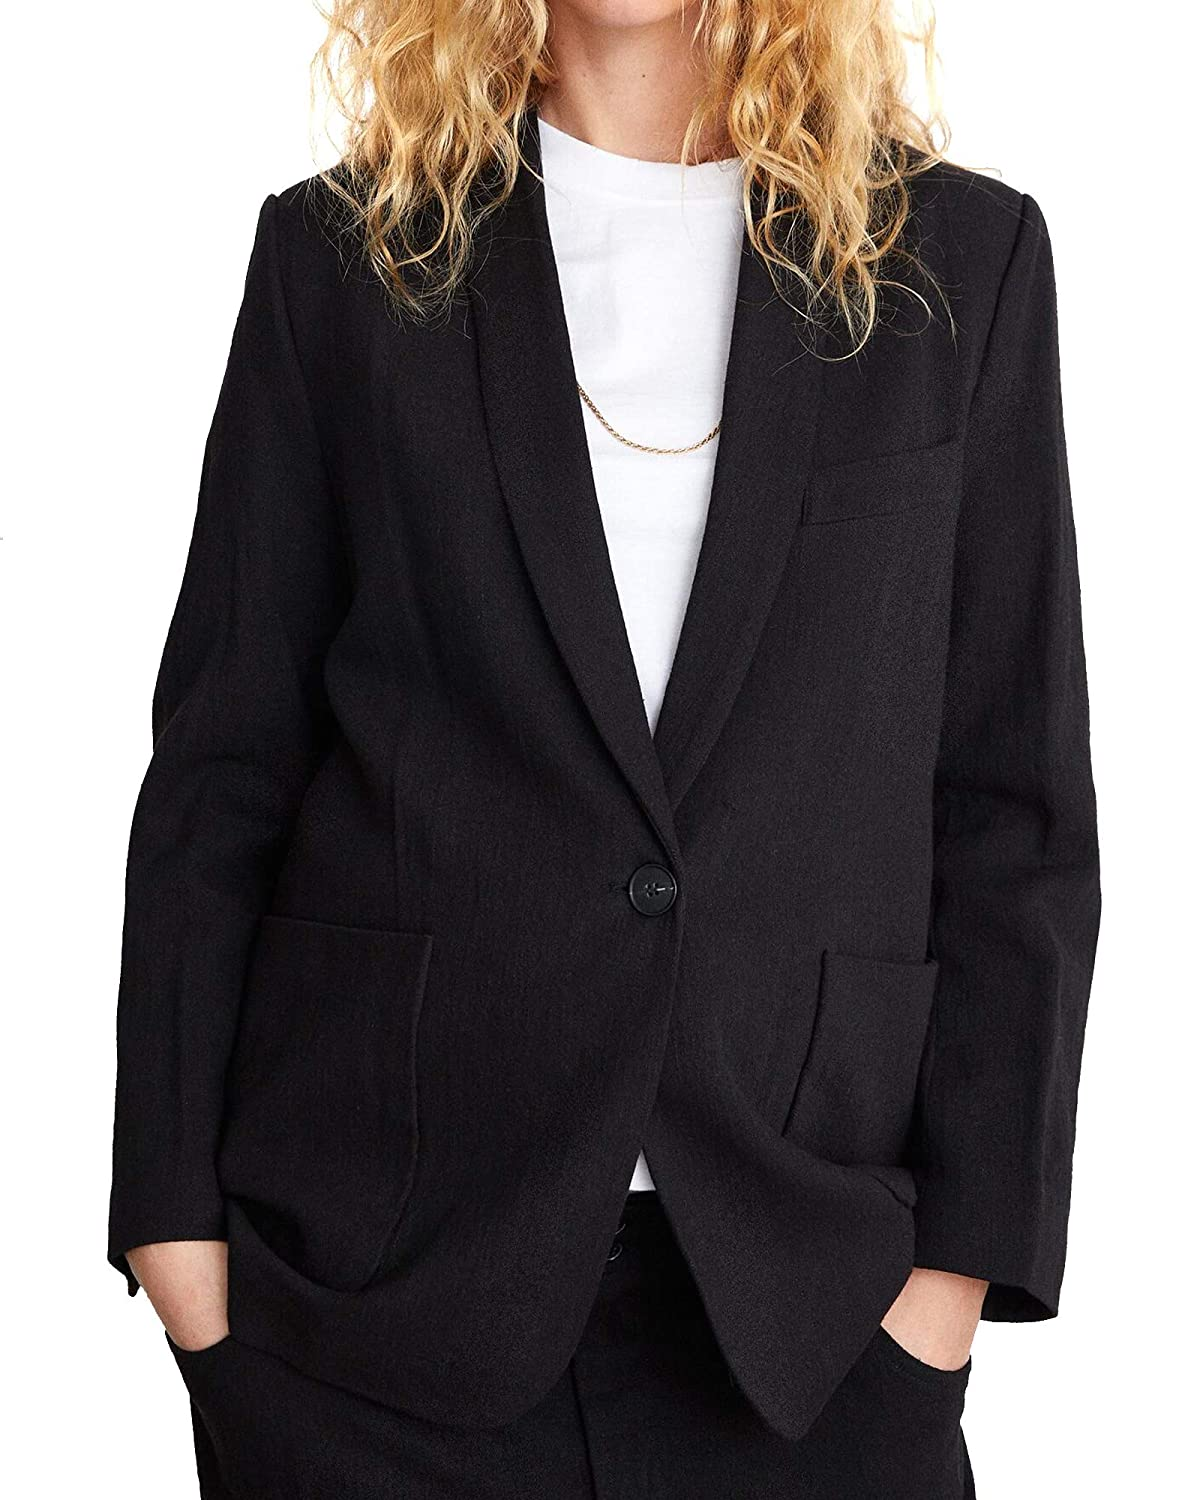 Zara Women Blazer with pockets 2761//057 Medium